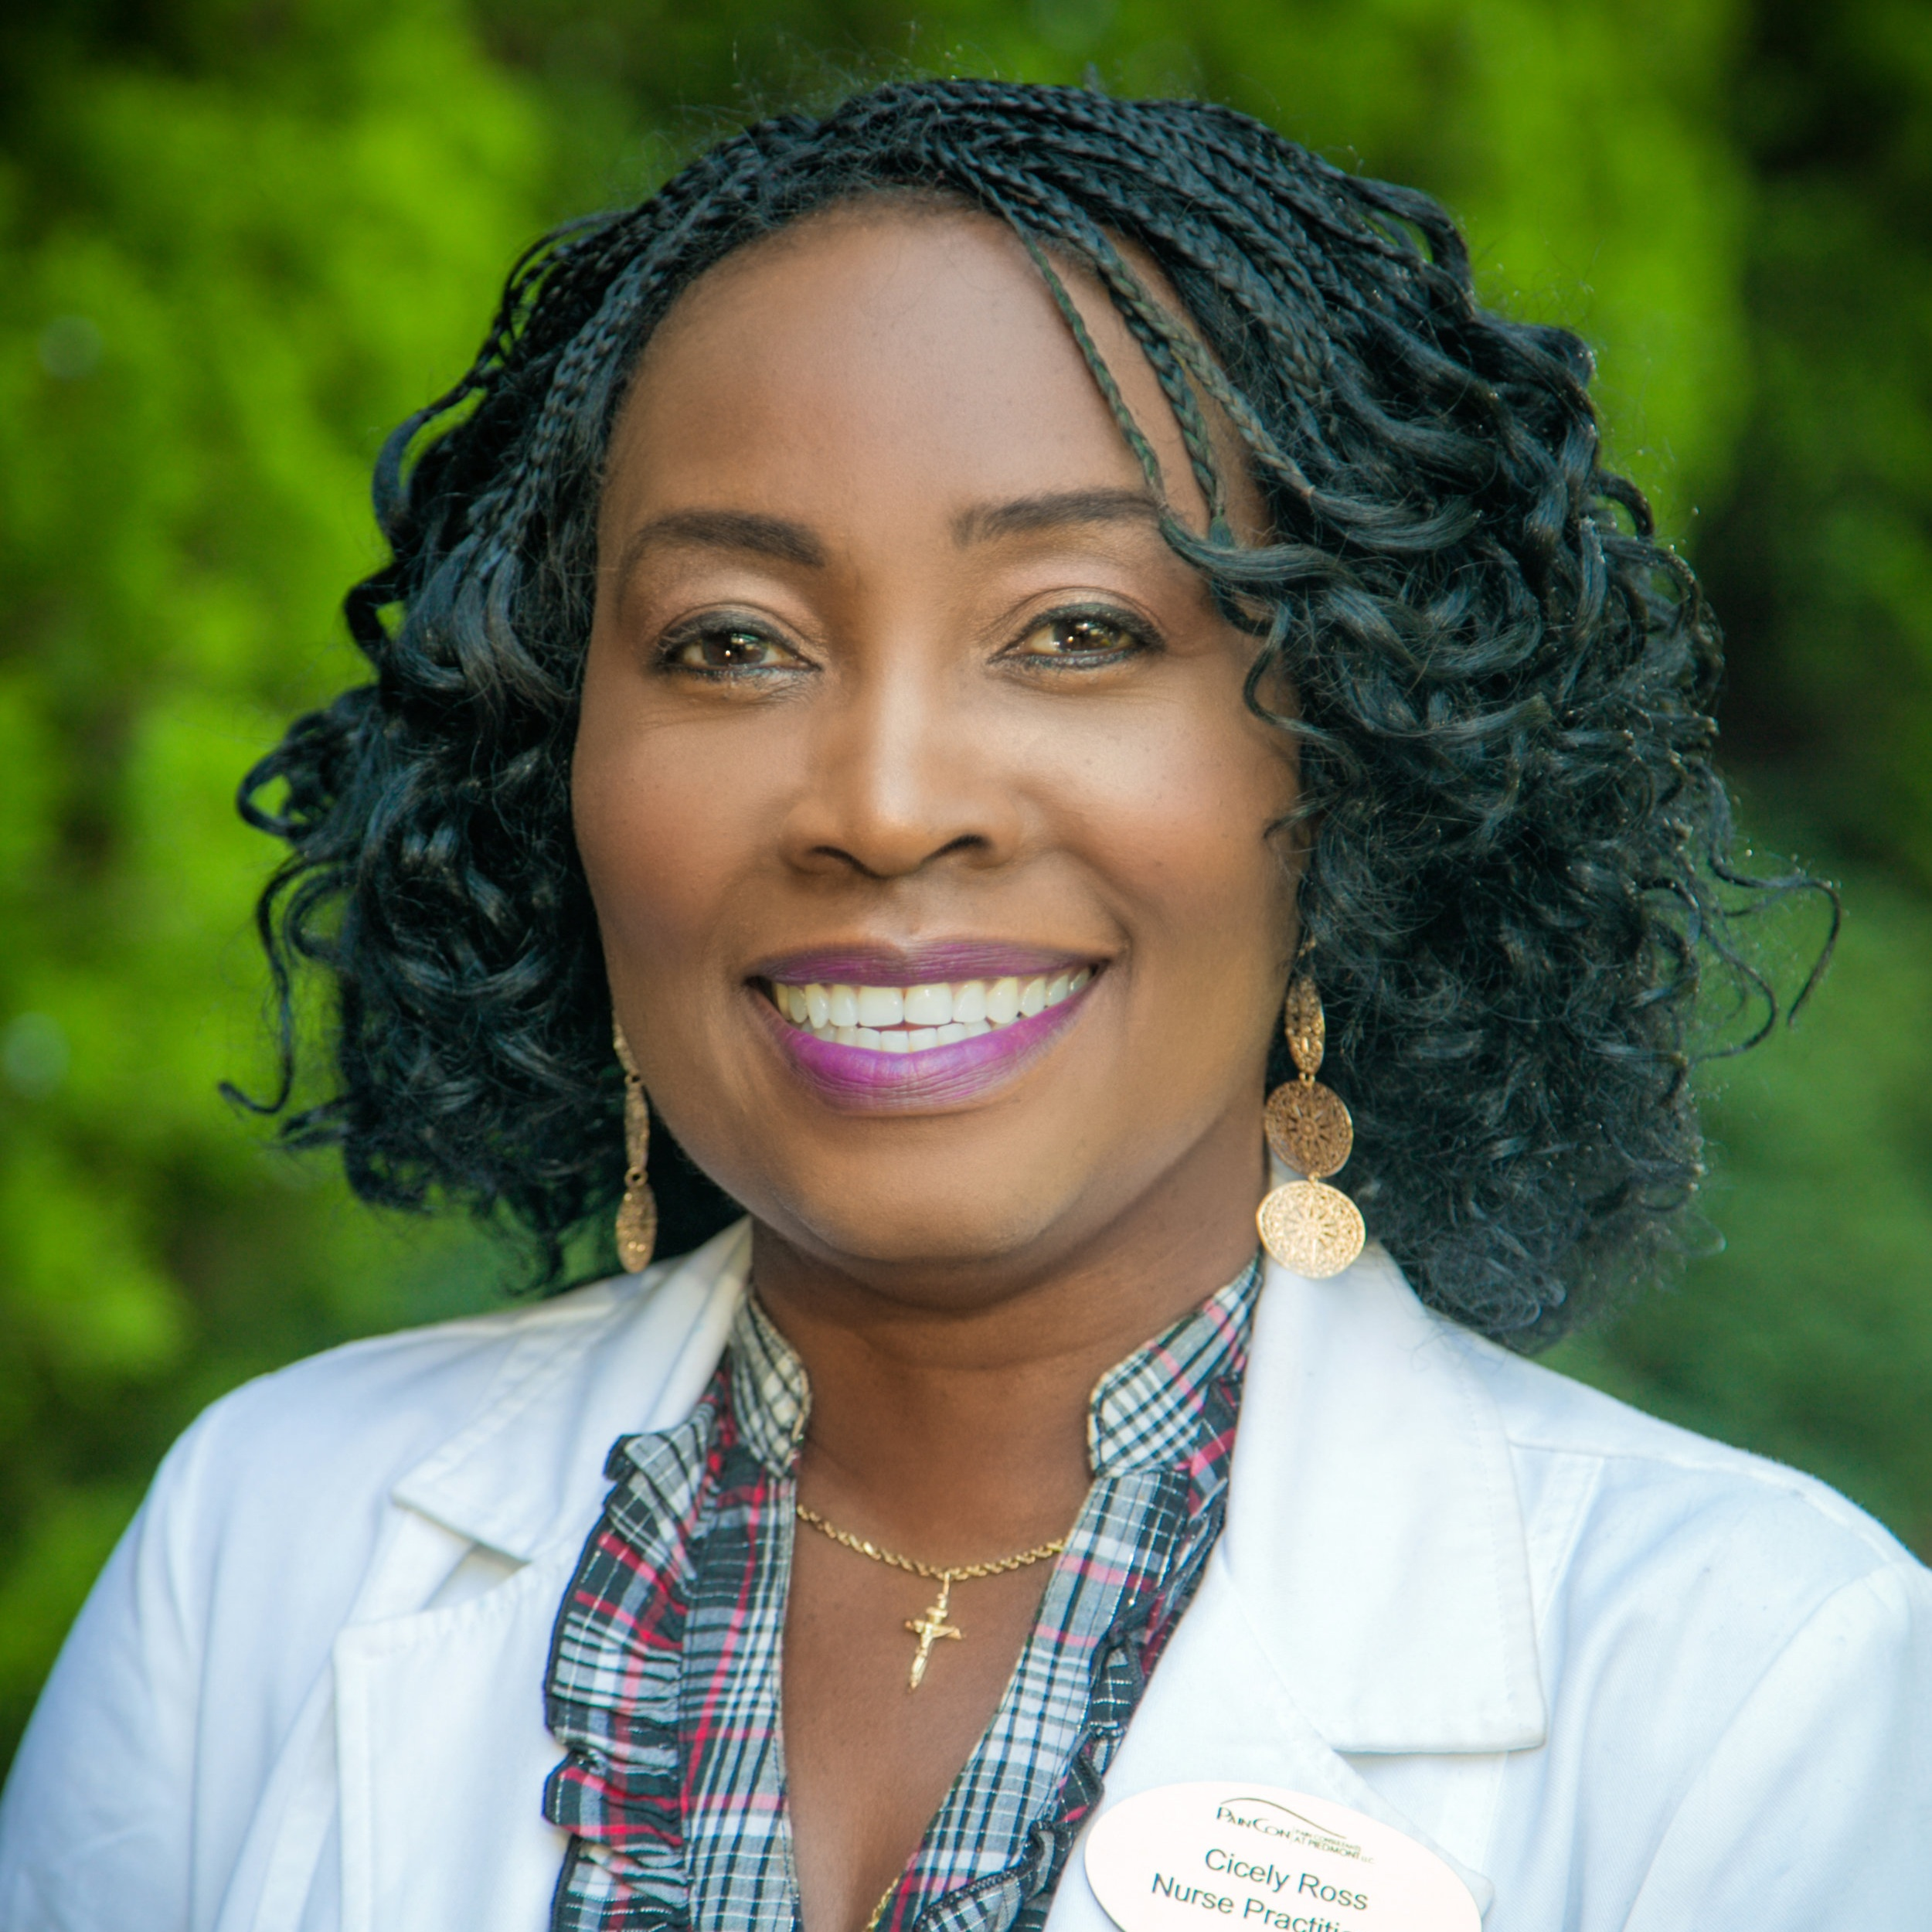 Cicely Ross - Nurse Practitioner